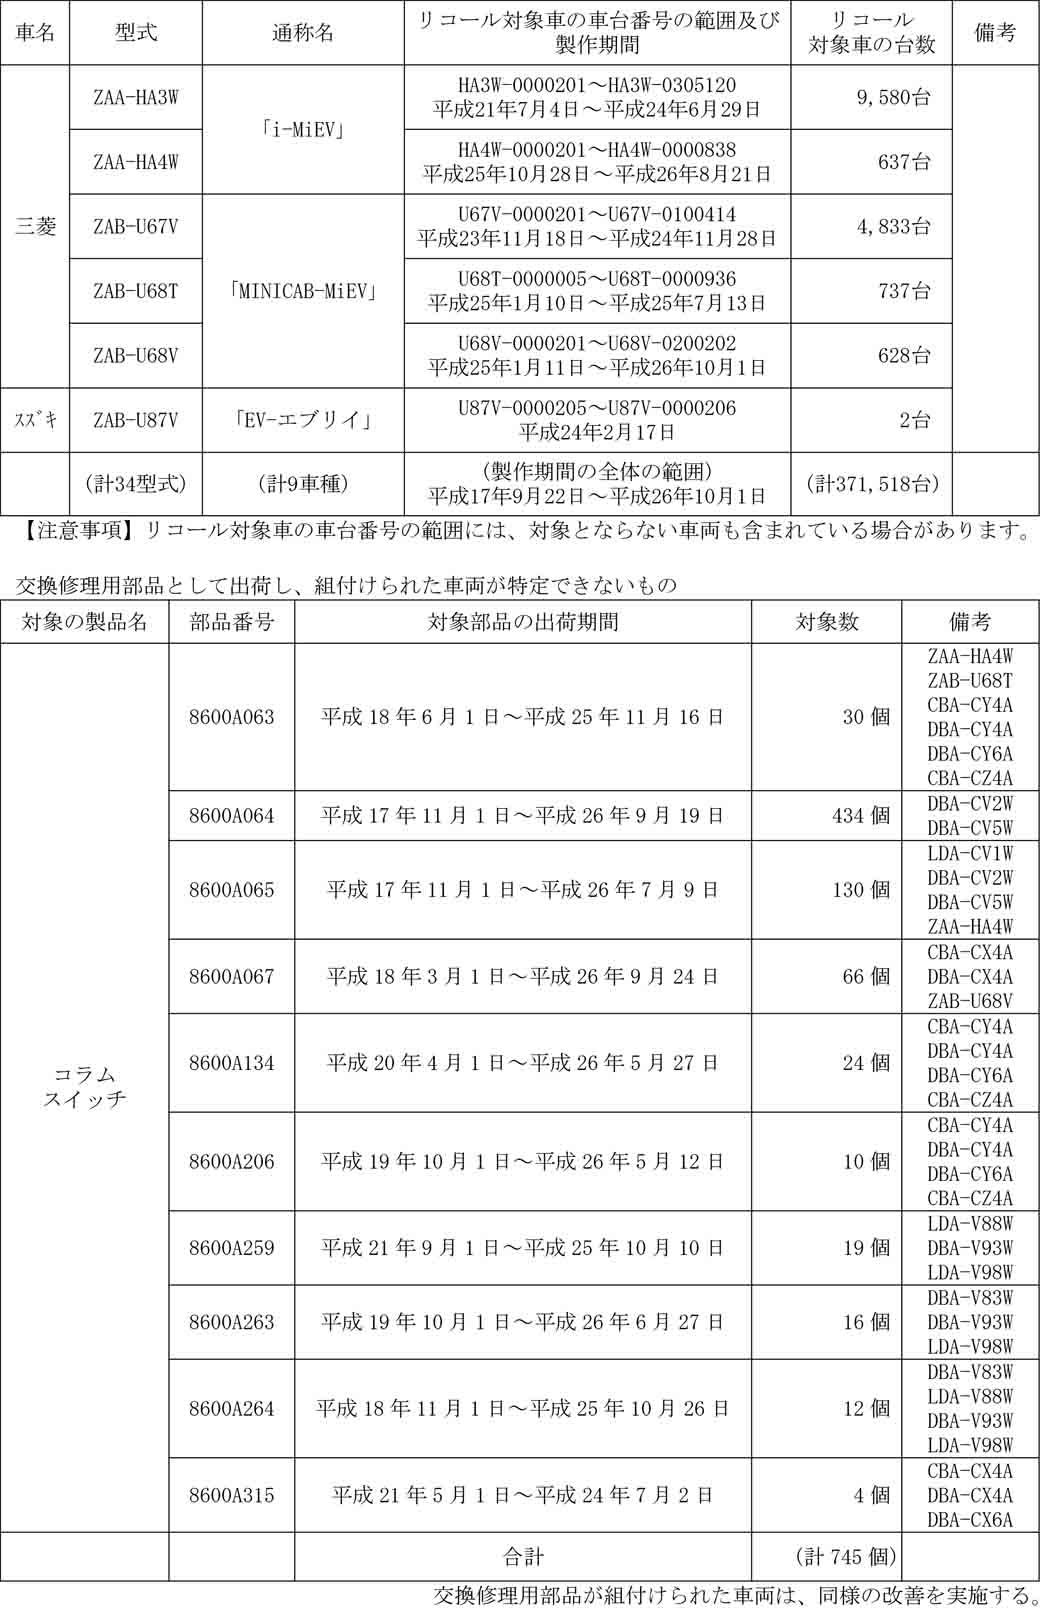 mitsubishi-motors-corporation-turn-light-switch-failure-of-a-delicatessen-other-recall-notification-of-a-total-of-371518-units20160218-3